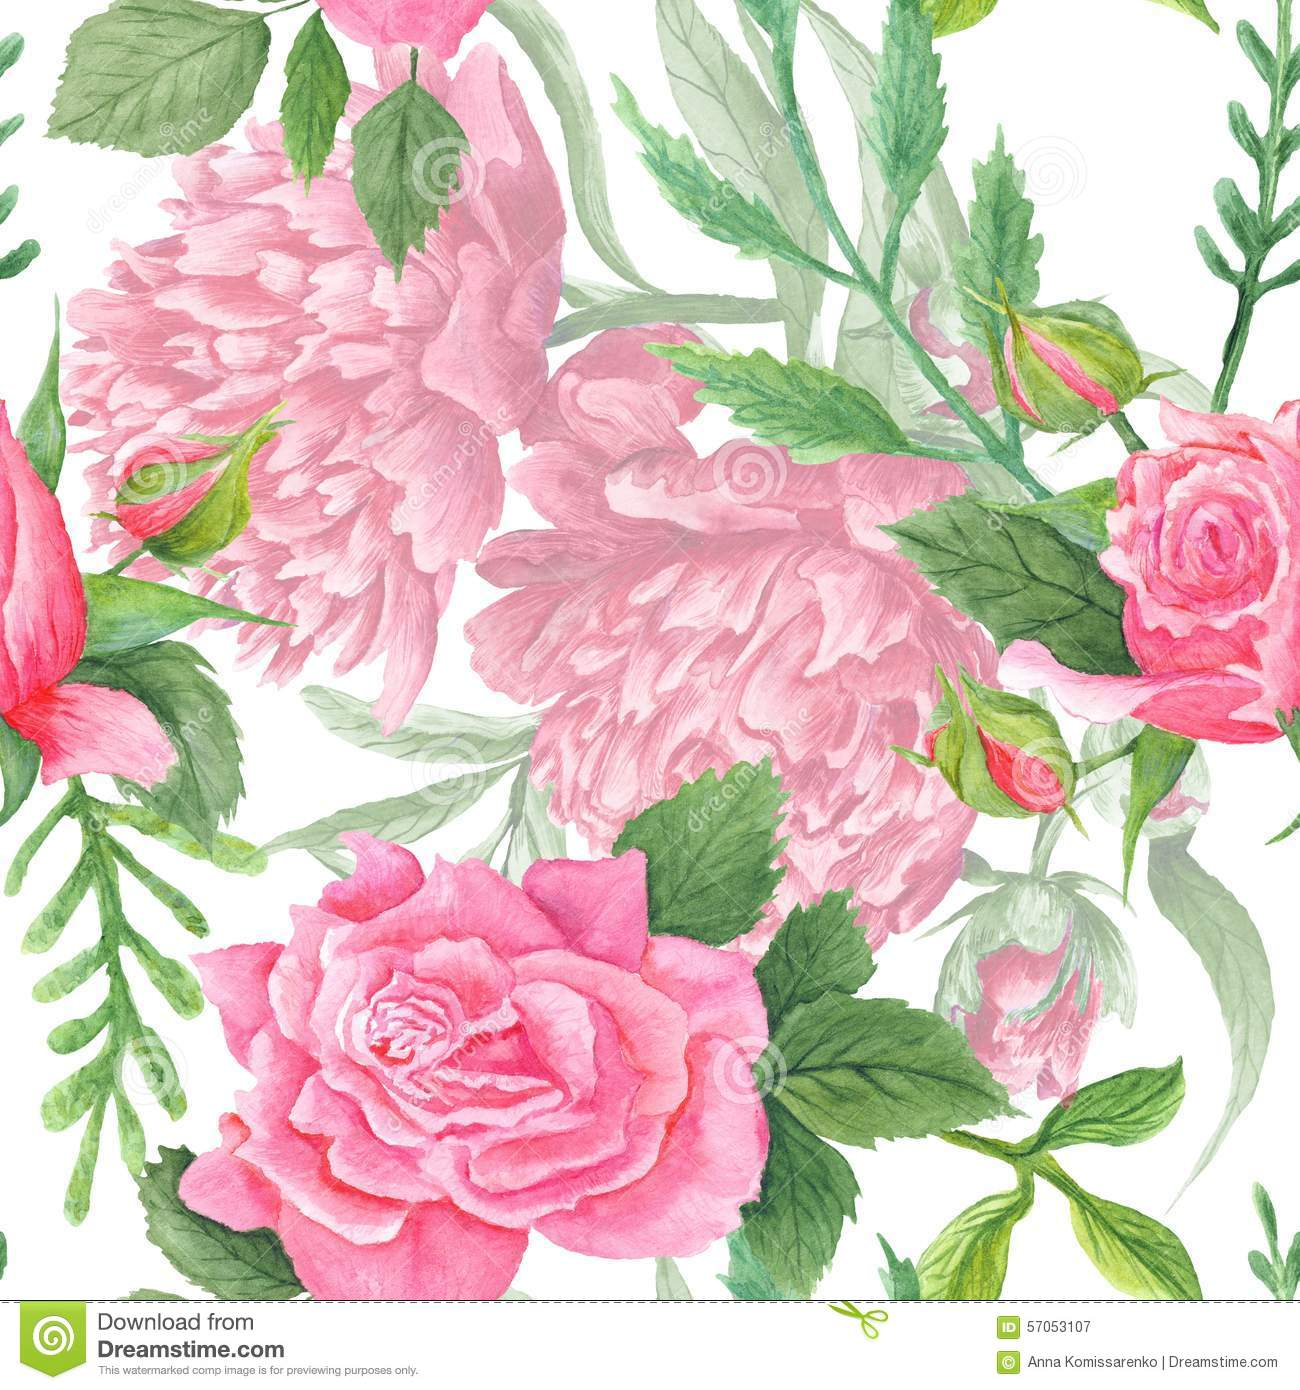 Peony flower isolated on white stock vector 368014568 shutterstock - Shabby Chic Watercolor Peony And Rose Pattern Stock Illustration 1300x1390